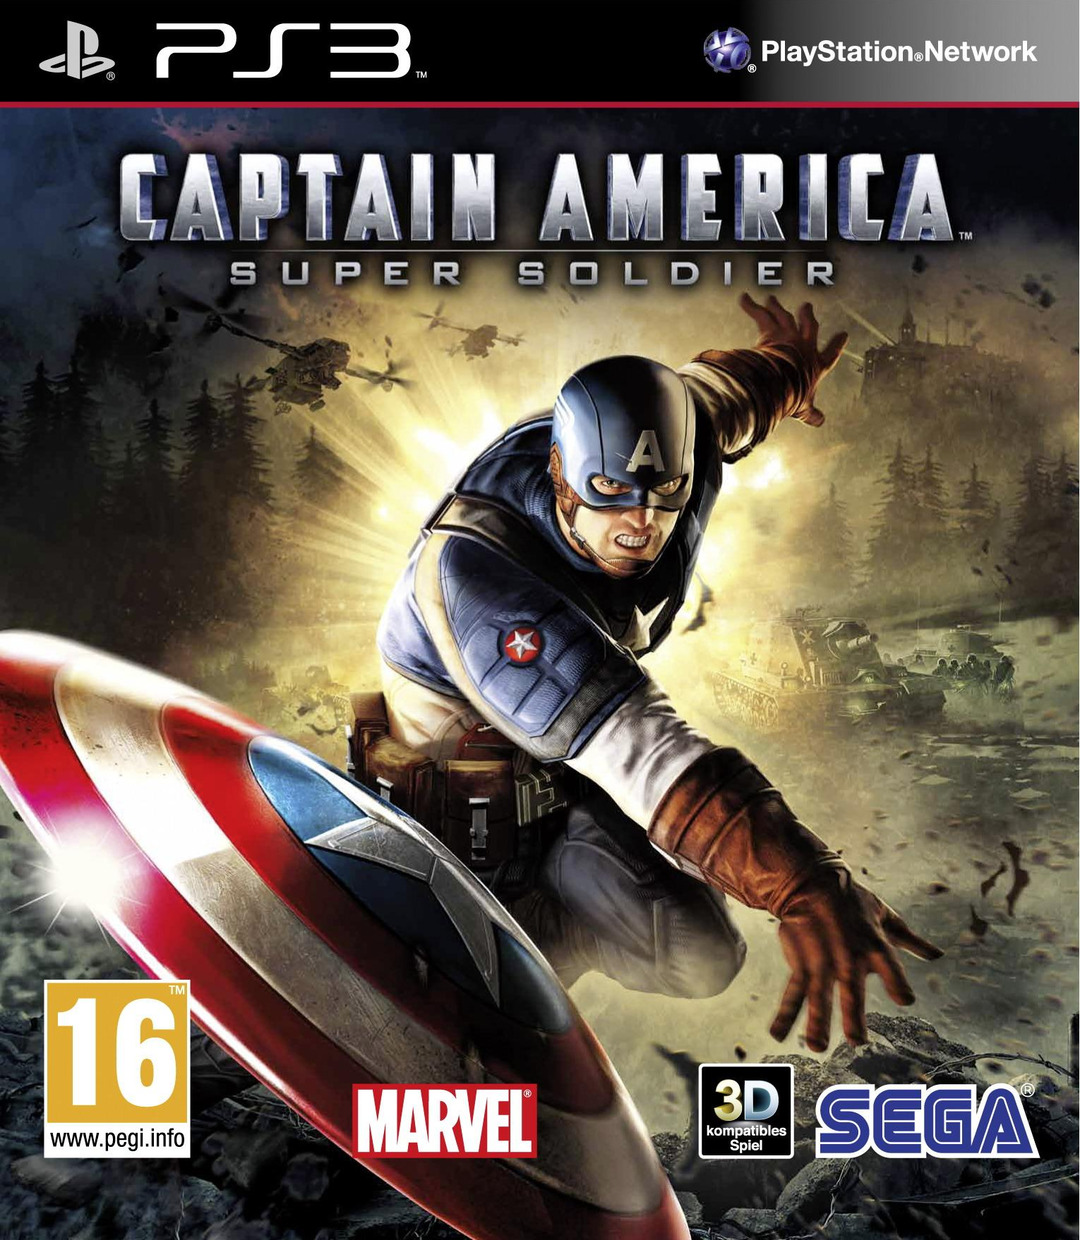 [MULTI] Captain America Super Soldier EUR PS3-ABSTRAKT